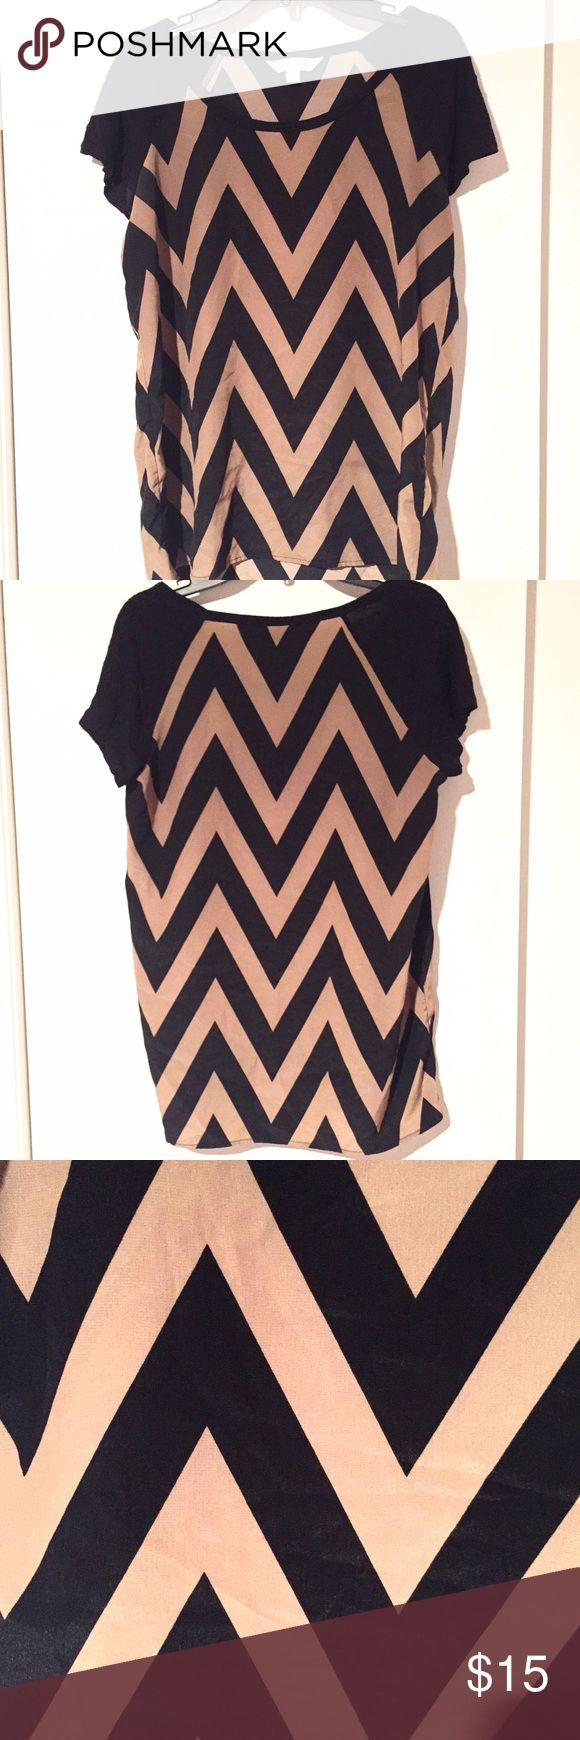 NWOT Chevron Top NWOT! Chevron top in Black and Tan. Charming Charlie Tops